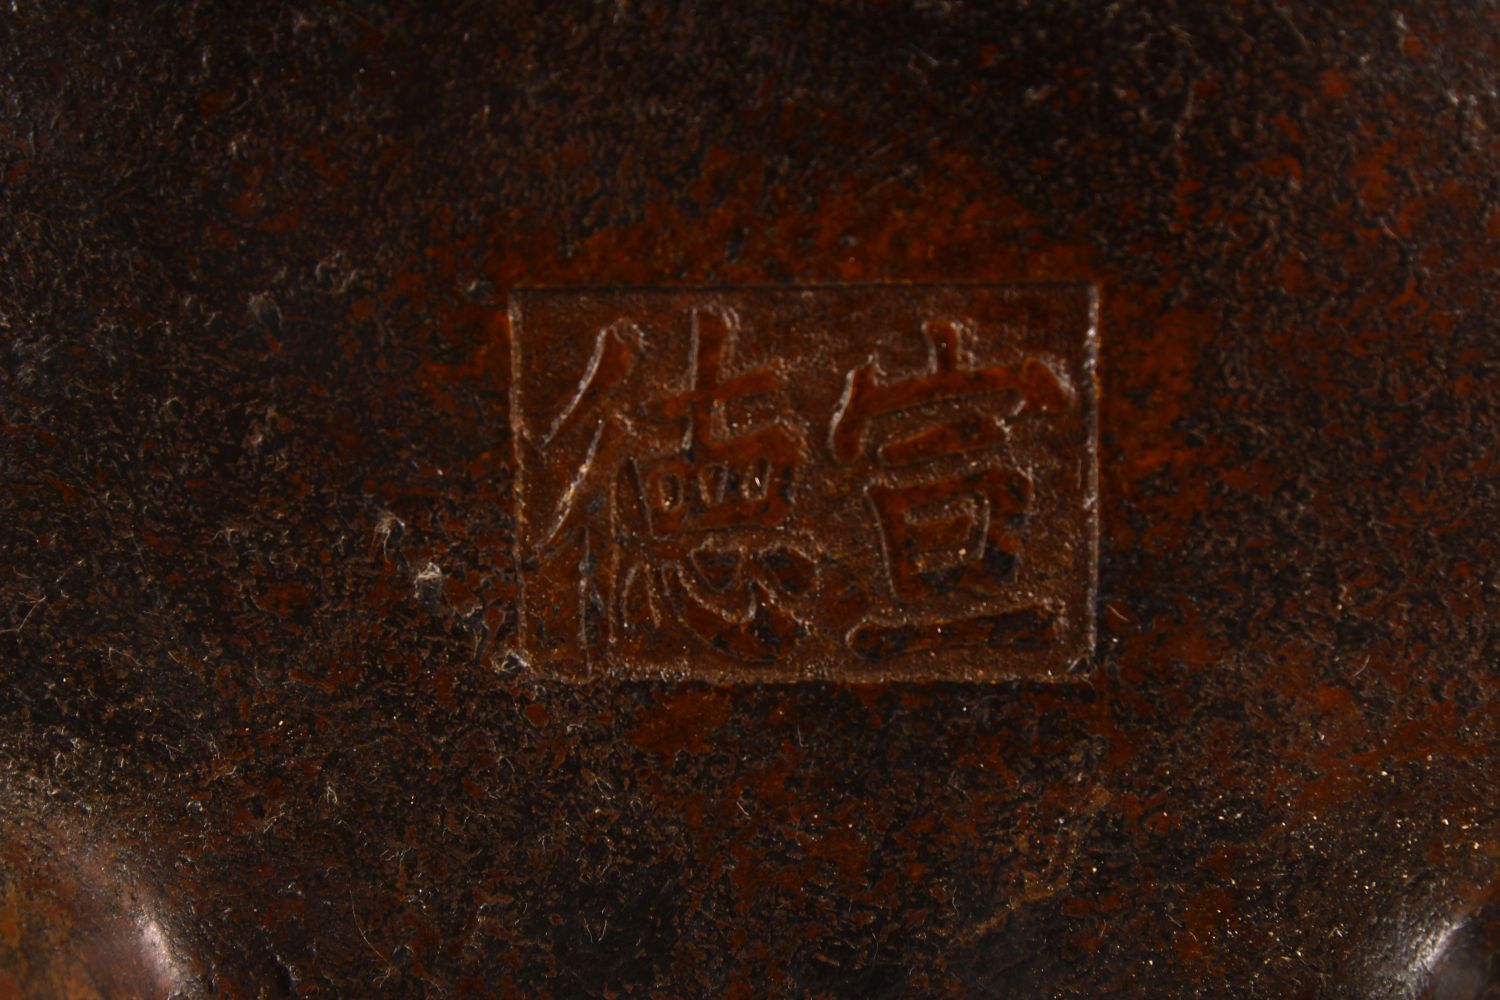 A CHINESE XUANDE STYLE BRONZE TRIPOD CENSER, underside with a mark, 16cm - Image 7 of 7